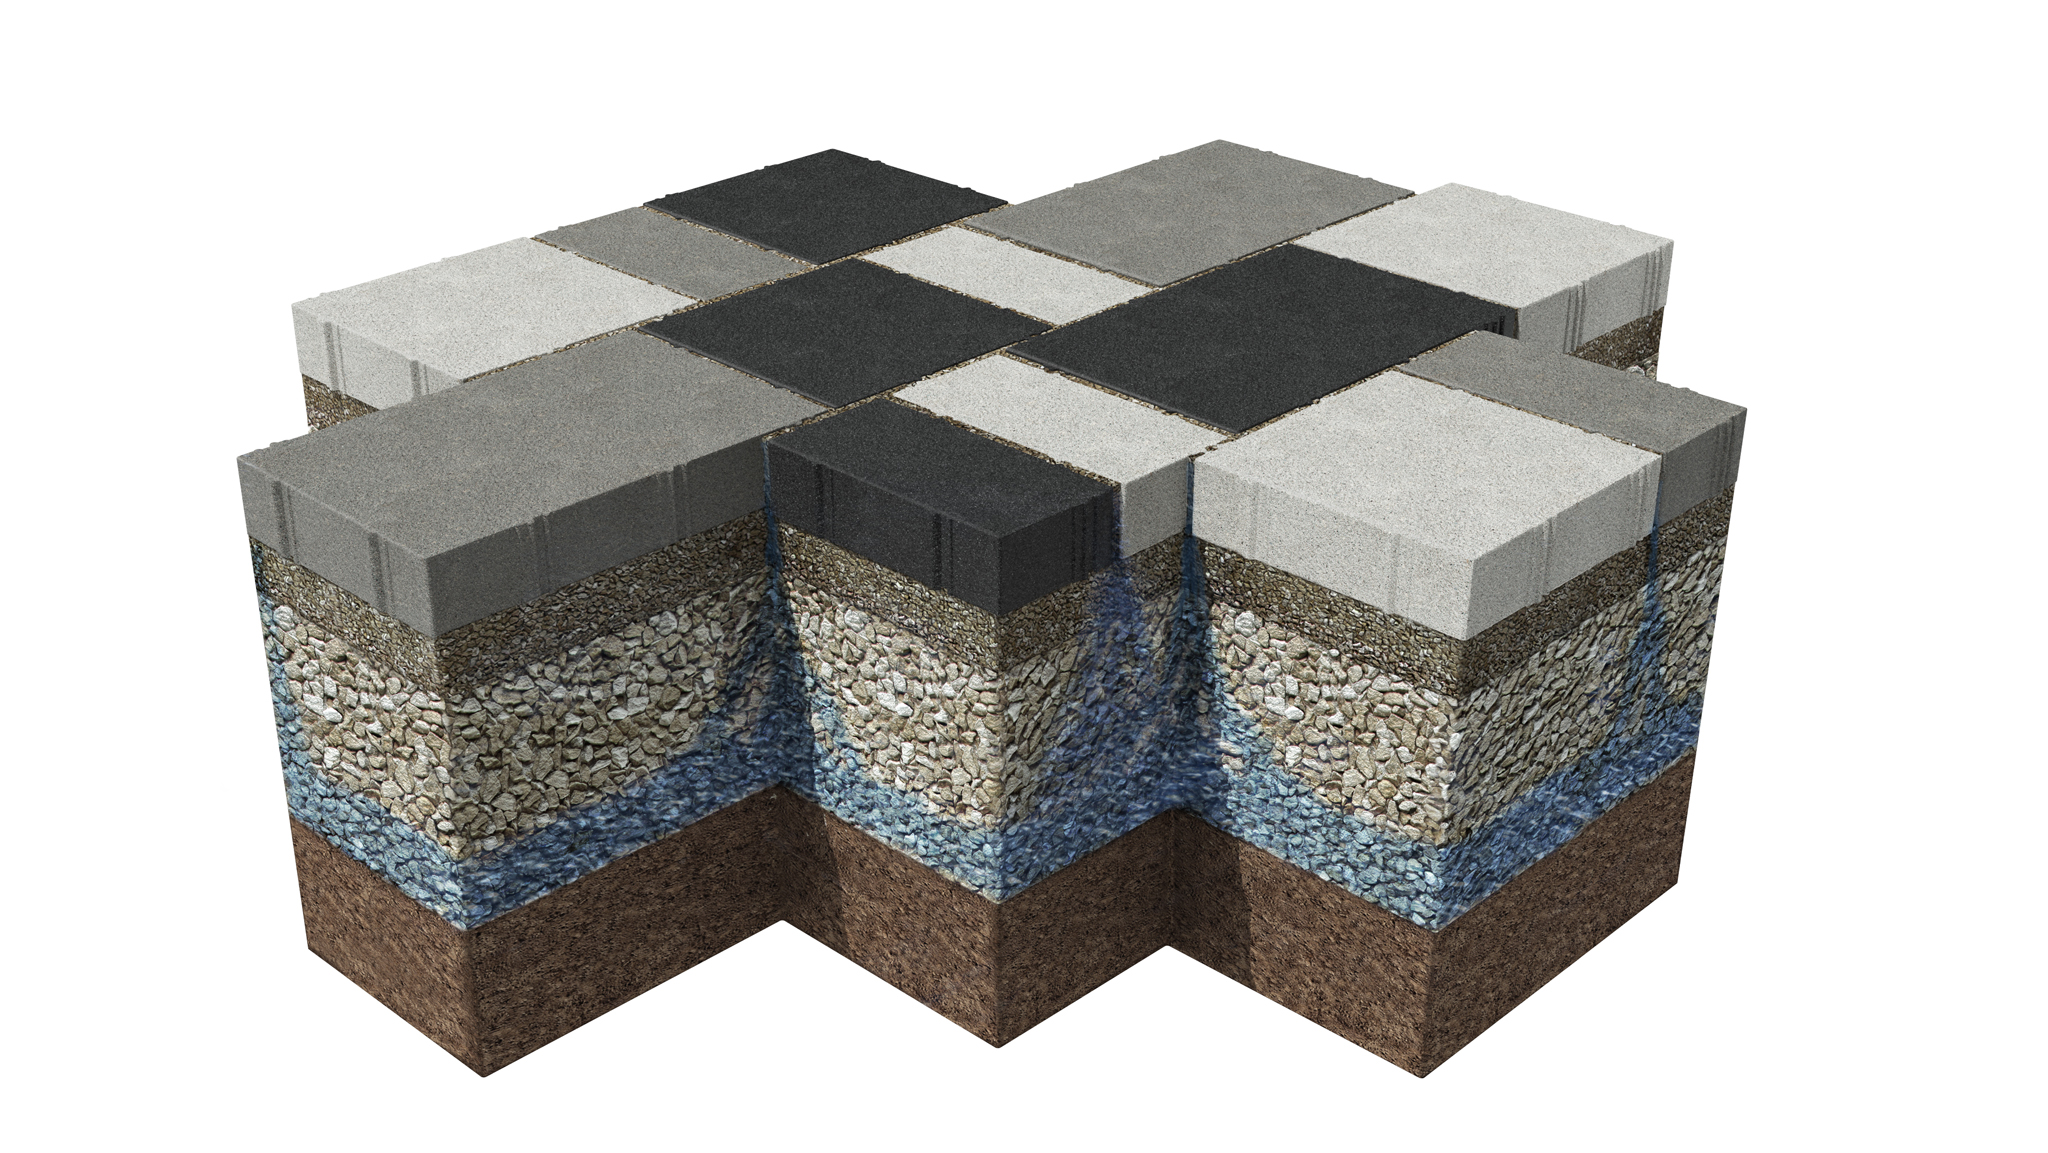 Permeable Paving design